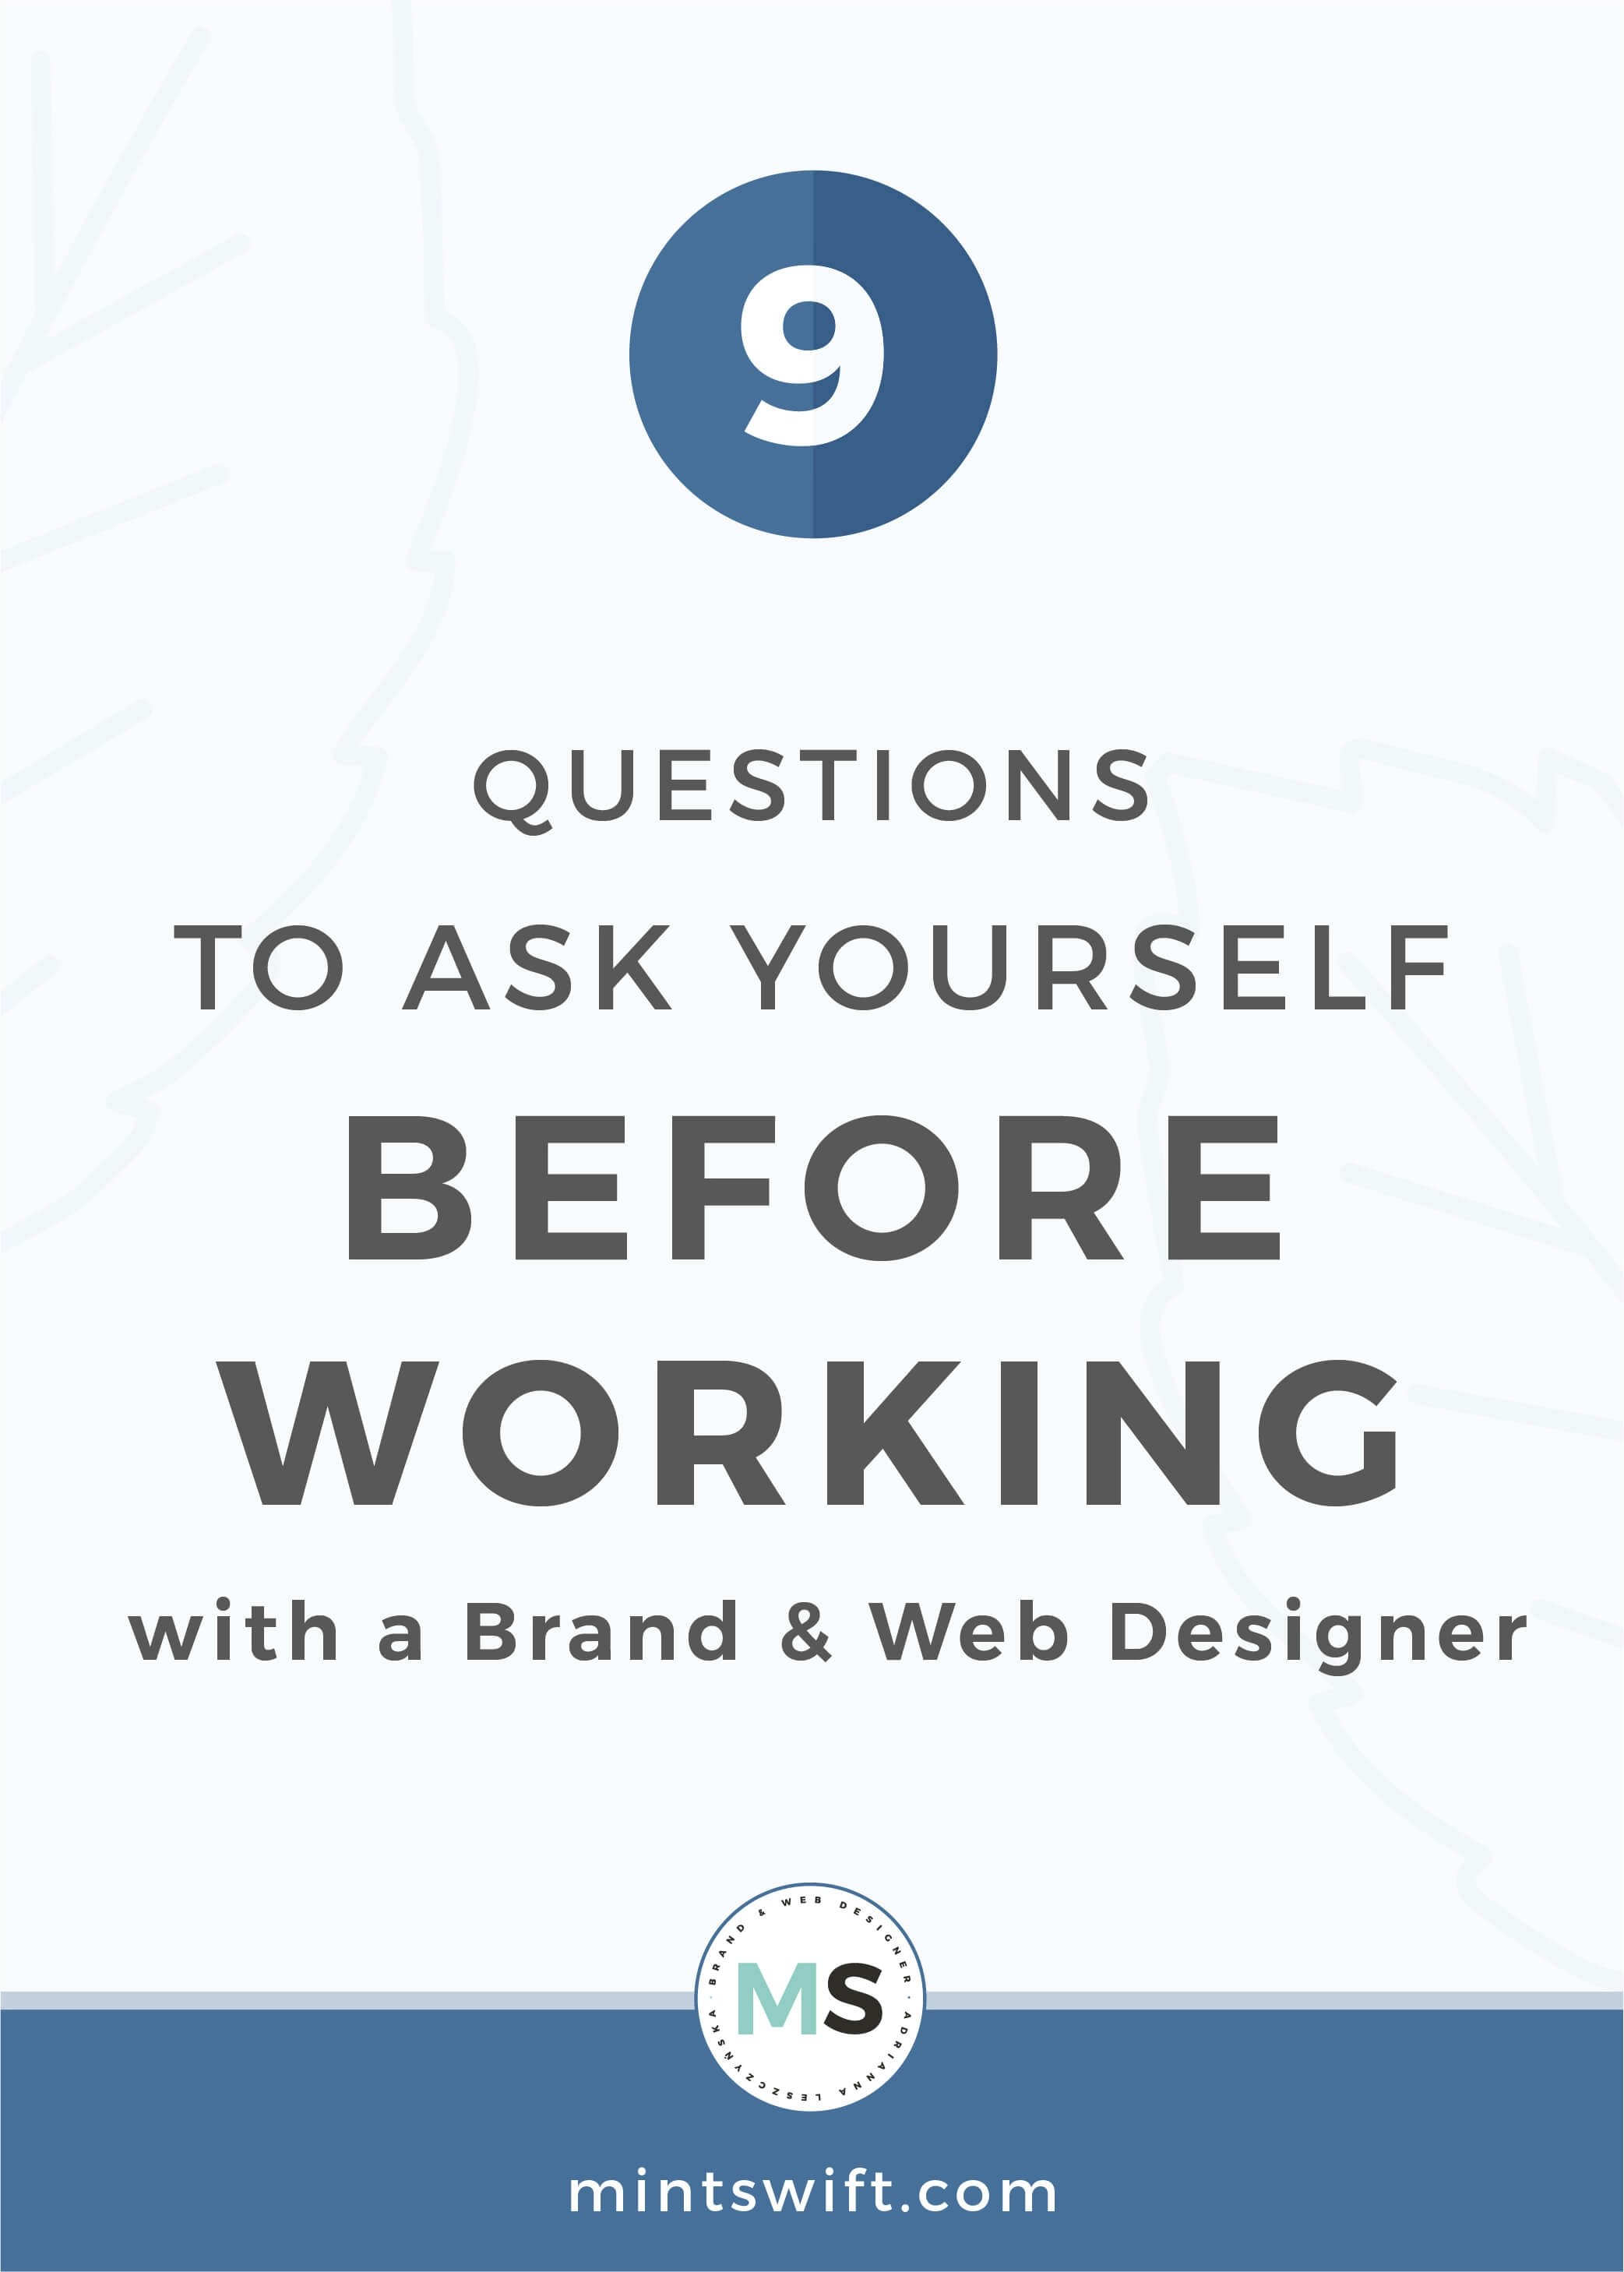 9 Questions to Ask Yourself Before Working with a Brand & Web Designer - MintSwift